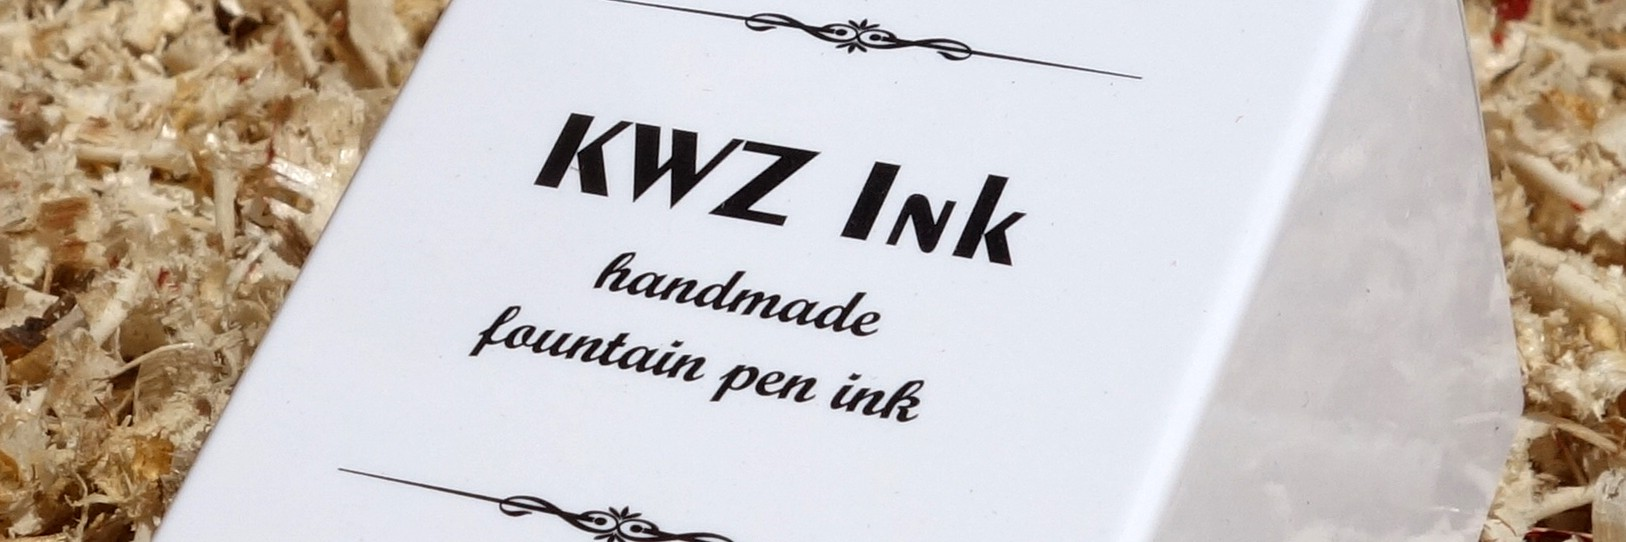 KWZ from Poland